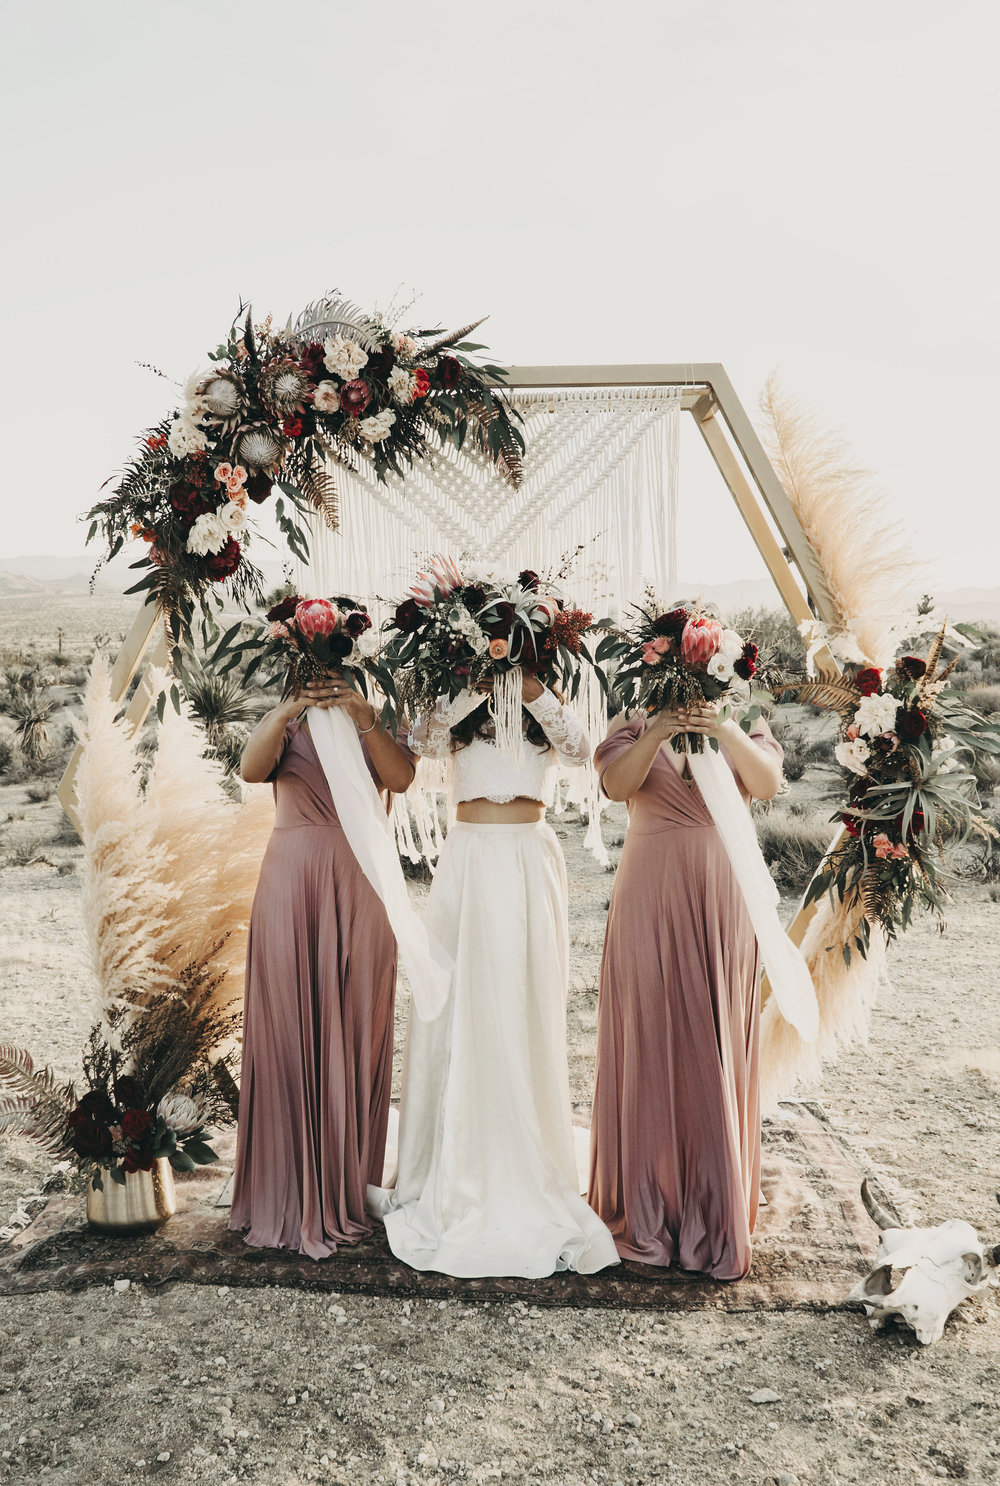 Joshua Tree Elopement - Photos: EMBLDN